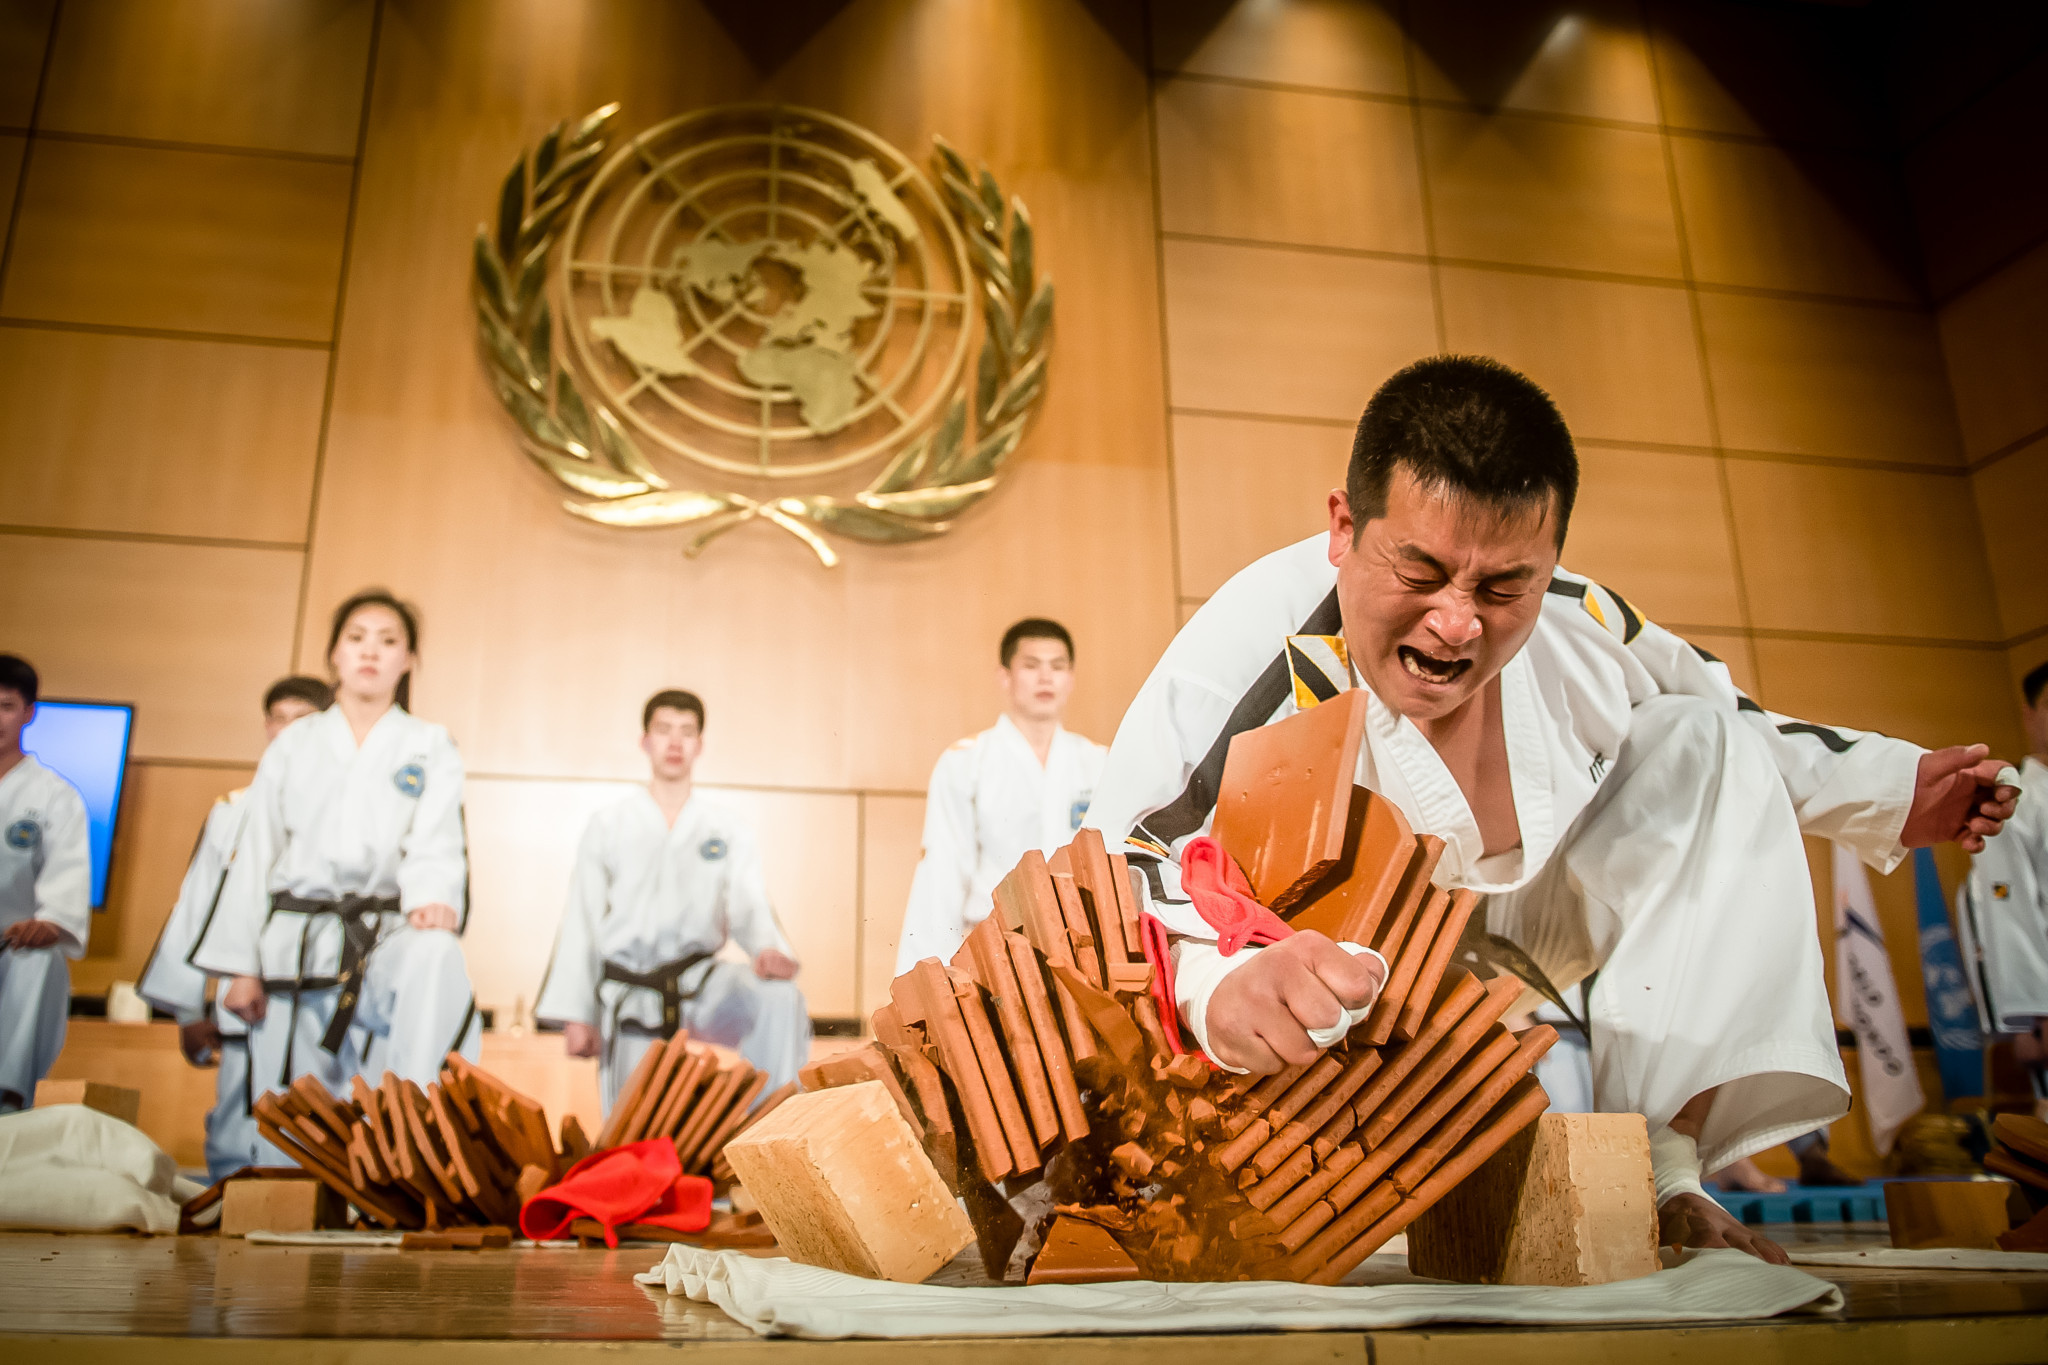 The United Nations Geneva Office welcomed World Taekwondo and the International Taekwondo Federation for a joint demonstration ©World Taekwondo